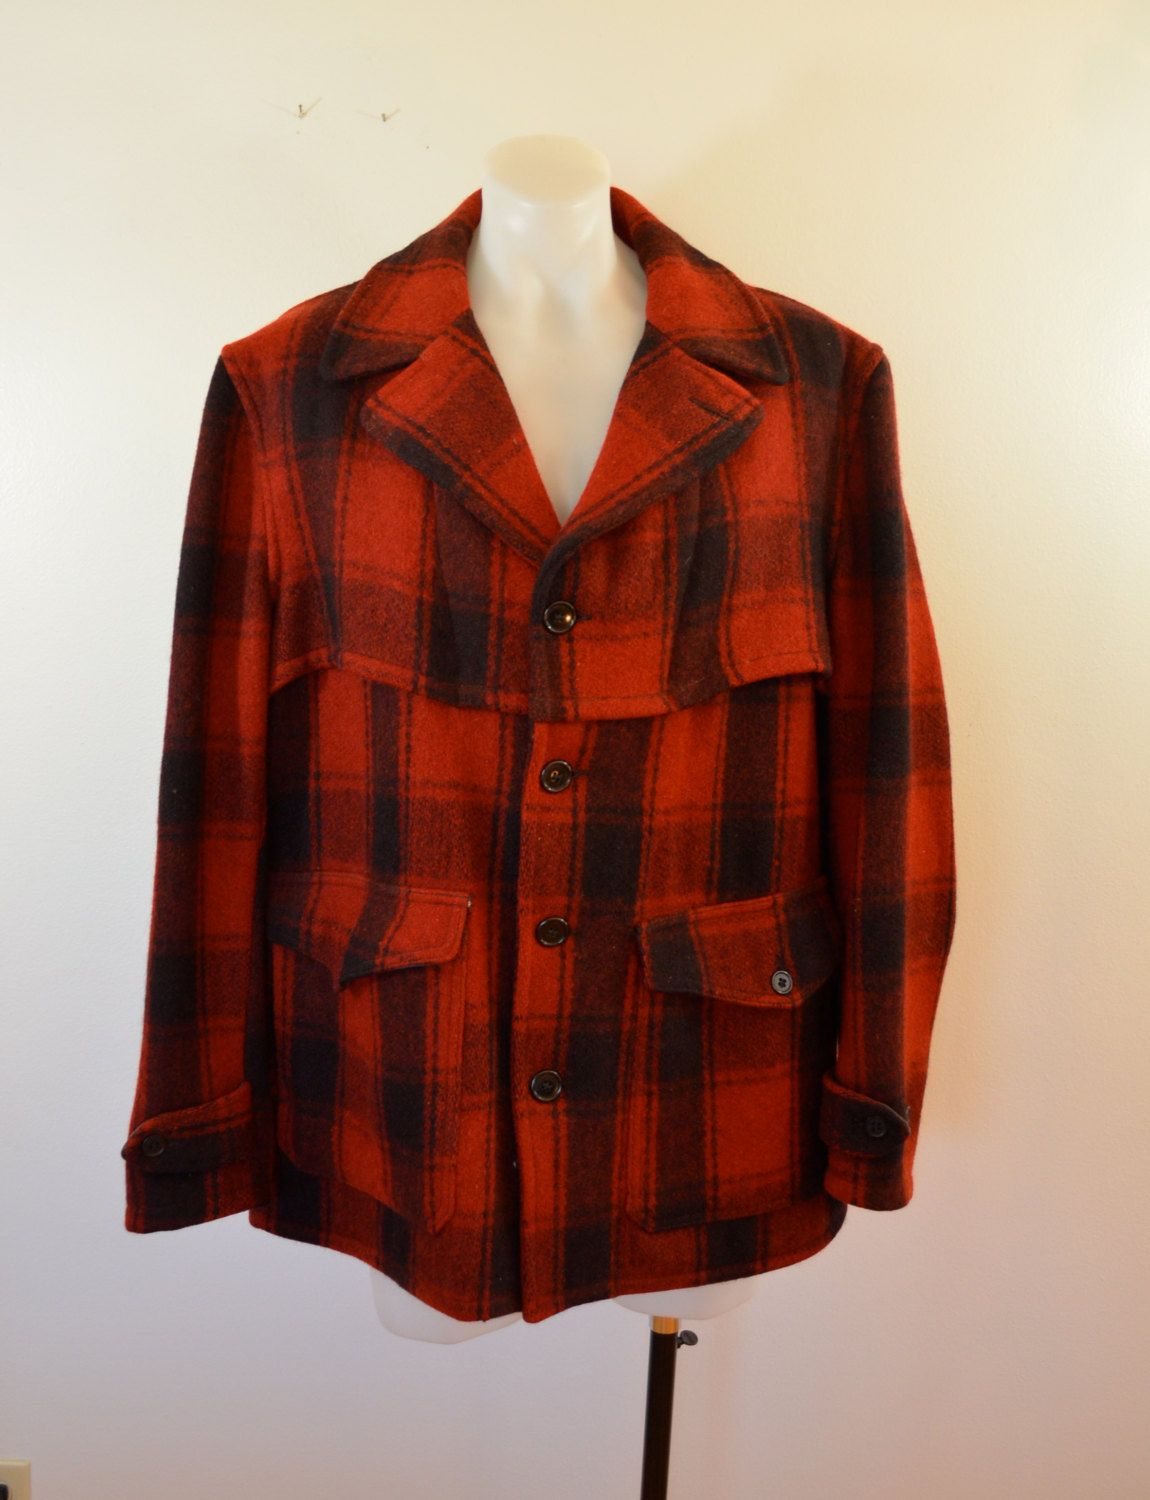 7256528b13e4d Vintage FOREMOST Wool Hunting Jacket coat 1950's Penneys USA size large RED  by ilovevintagestuff on Etsy